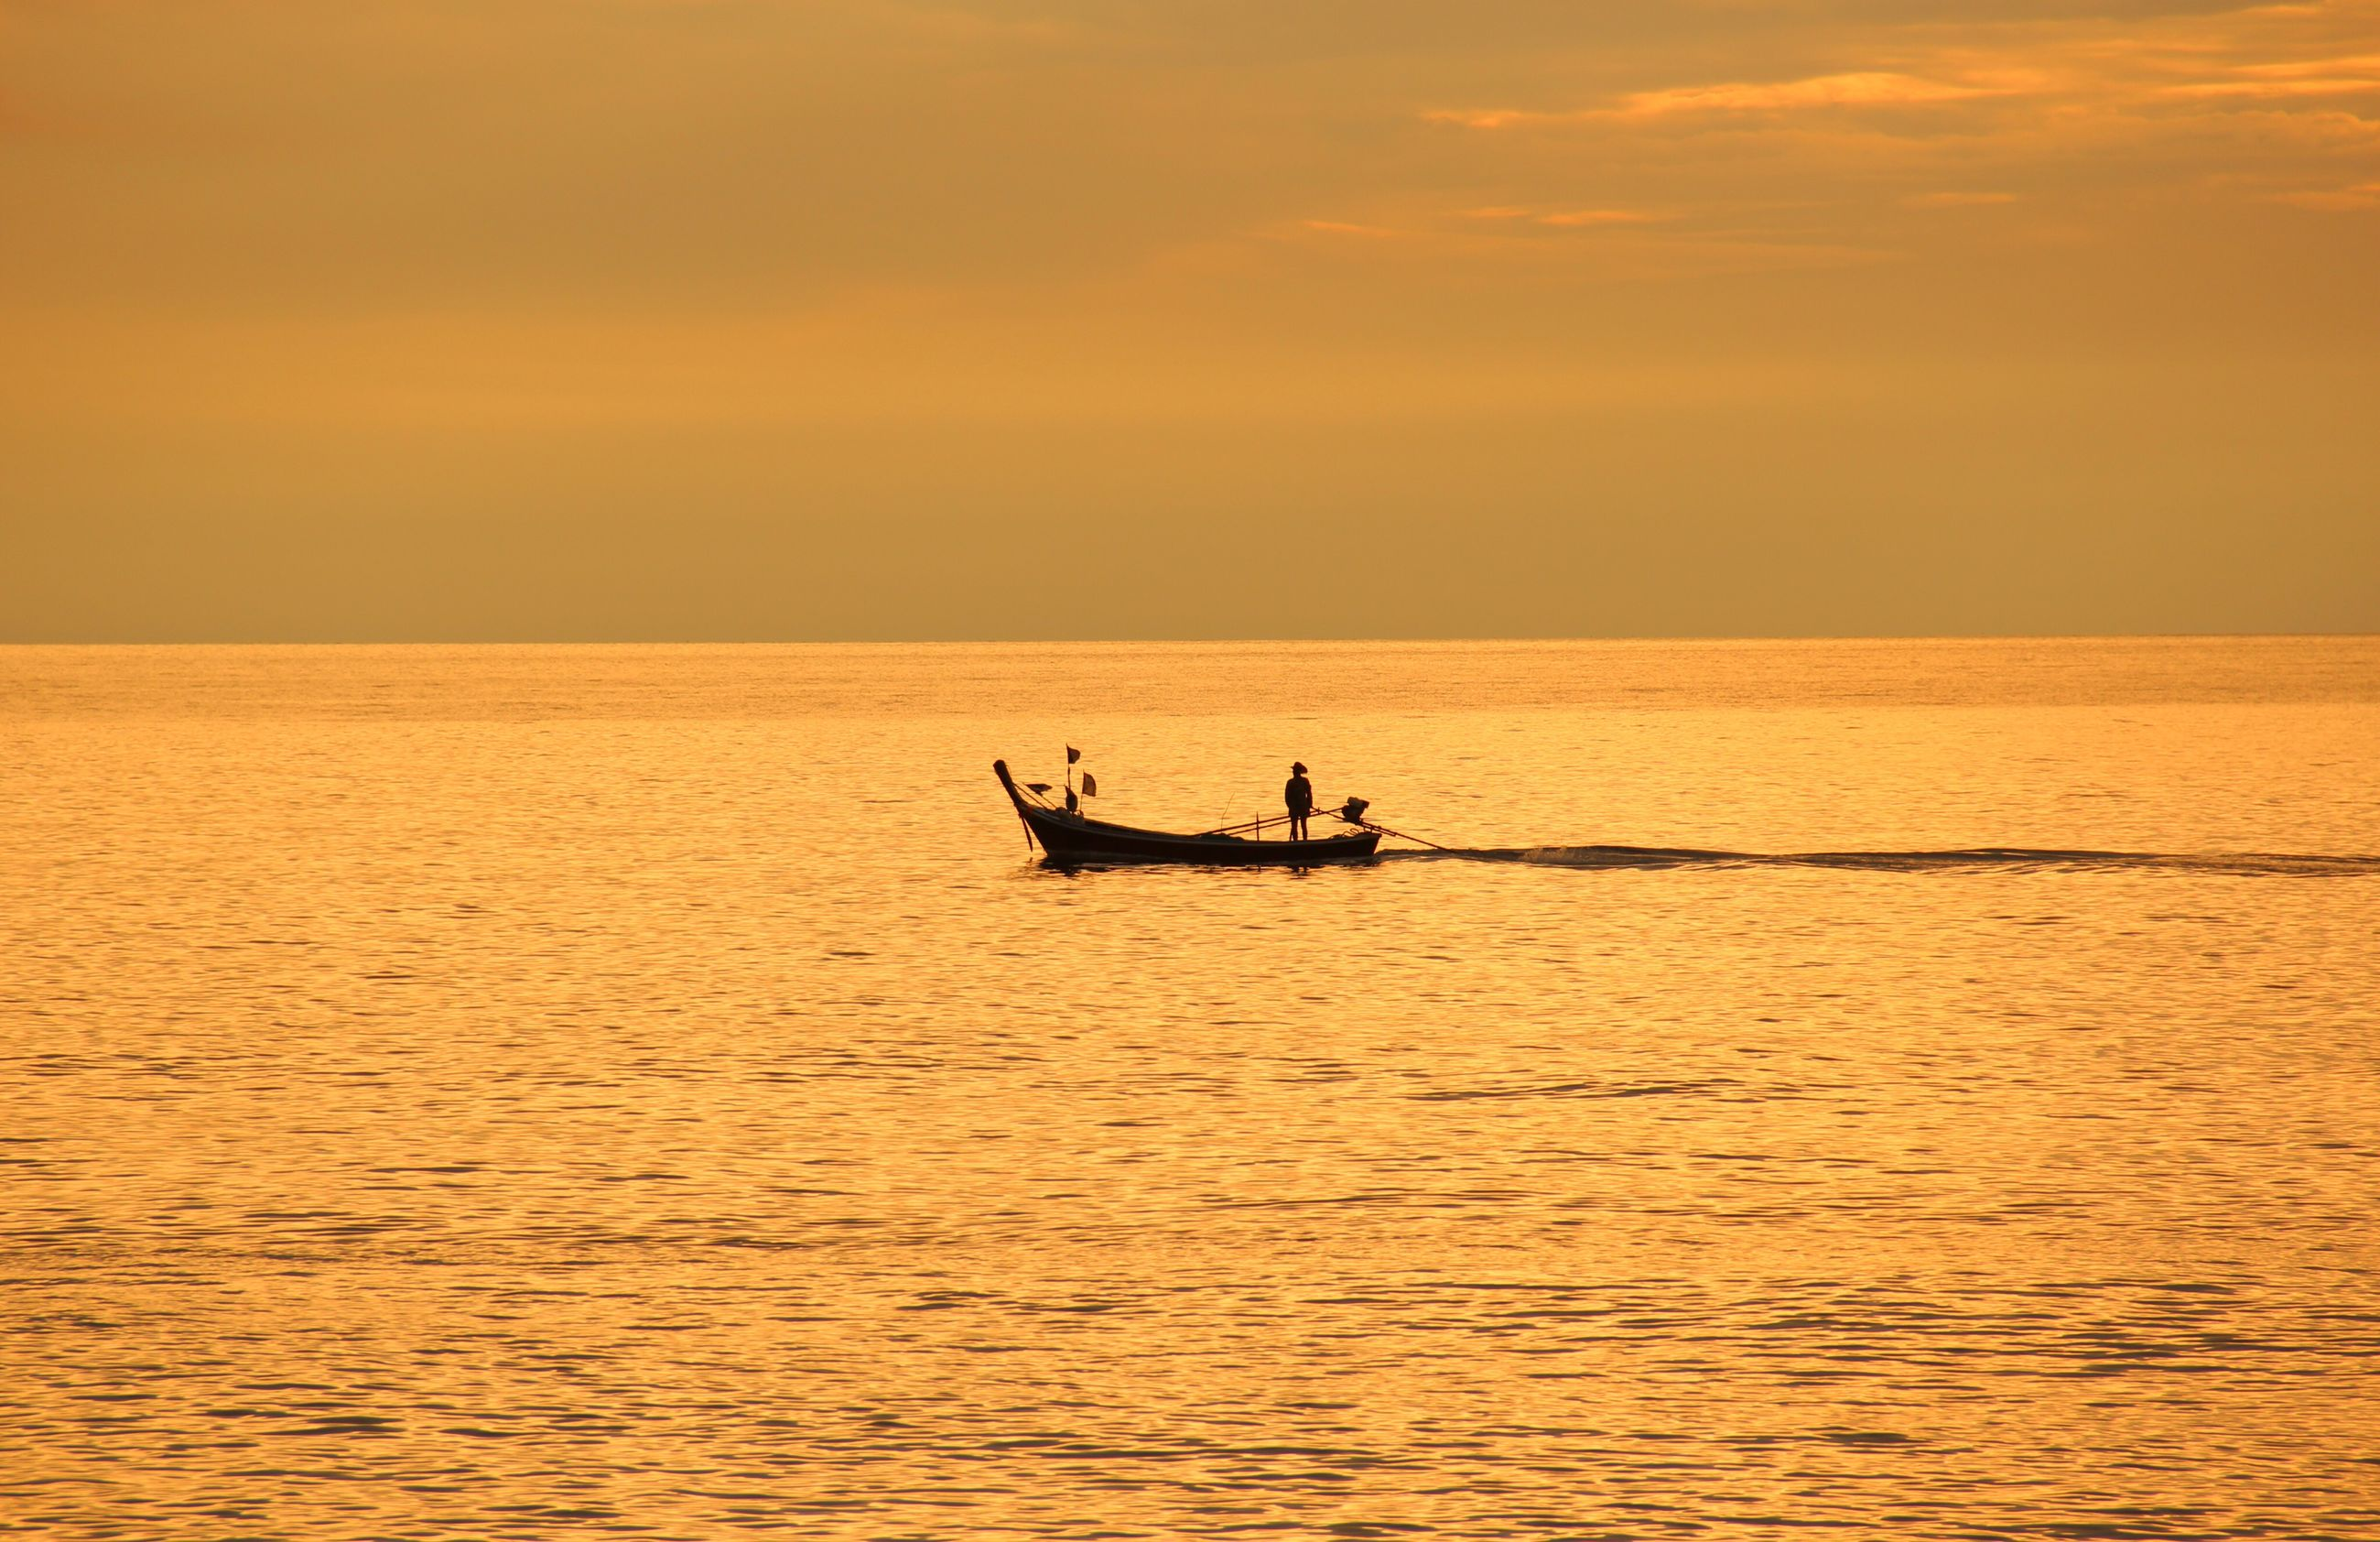 nautical vessel, transportation, sunset, mode of transport, sea, horizon over water, water, boat, waterfront, rippled, silhouette, orange color, journey, scenics, sailing, seascape, tranquil scene, tranquility, beauty in nature, calm, nature, sky, outdoors, ocean, traveling, non-urban scene, tourism, outline